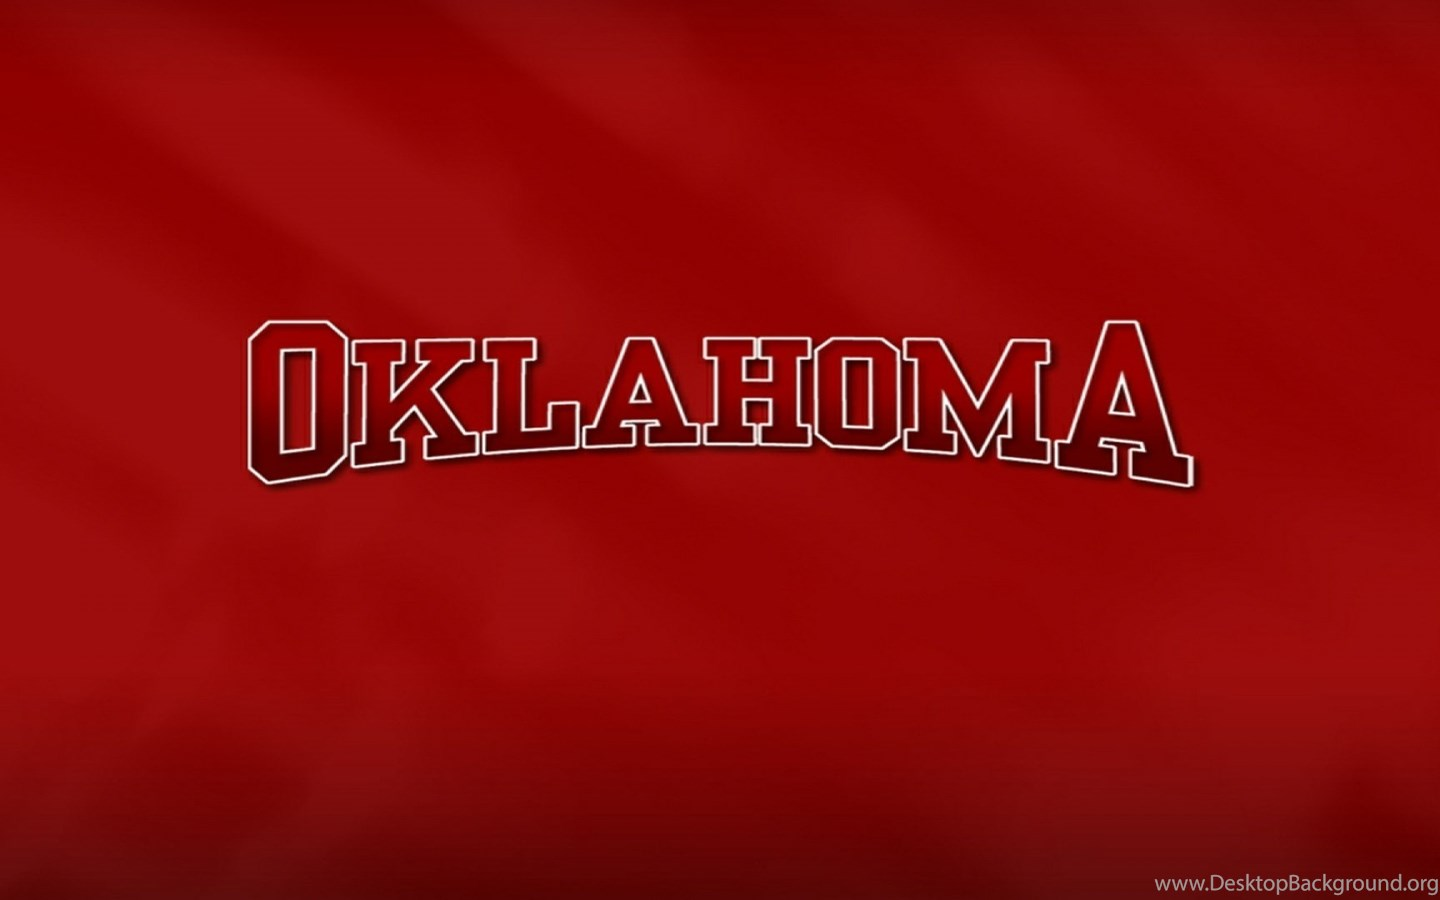 Oklahoma Sooners College Football Wallpapers Desktop Background